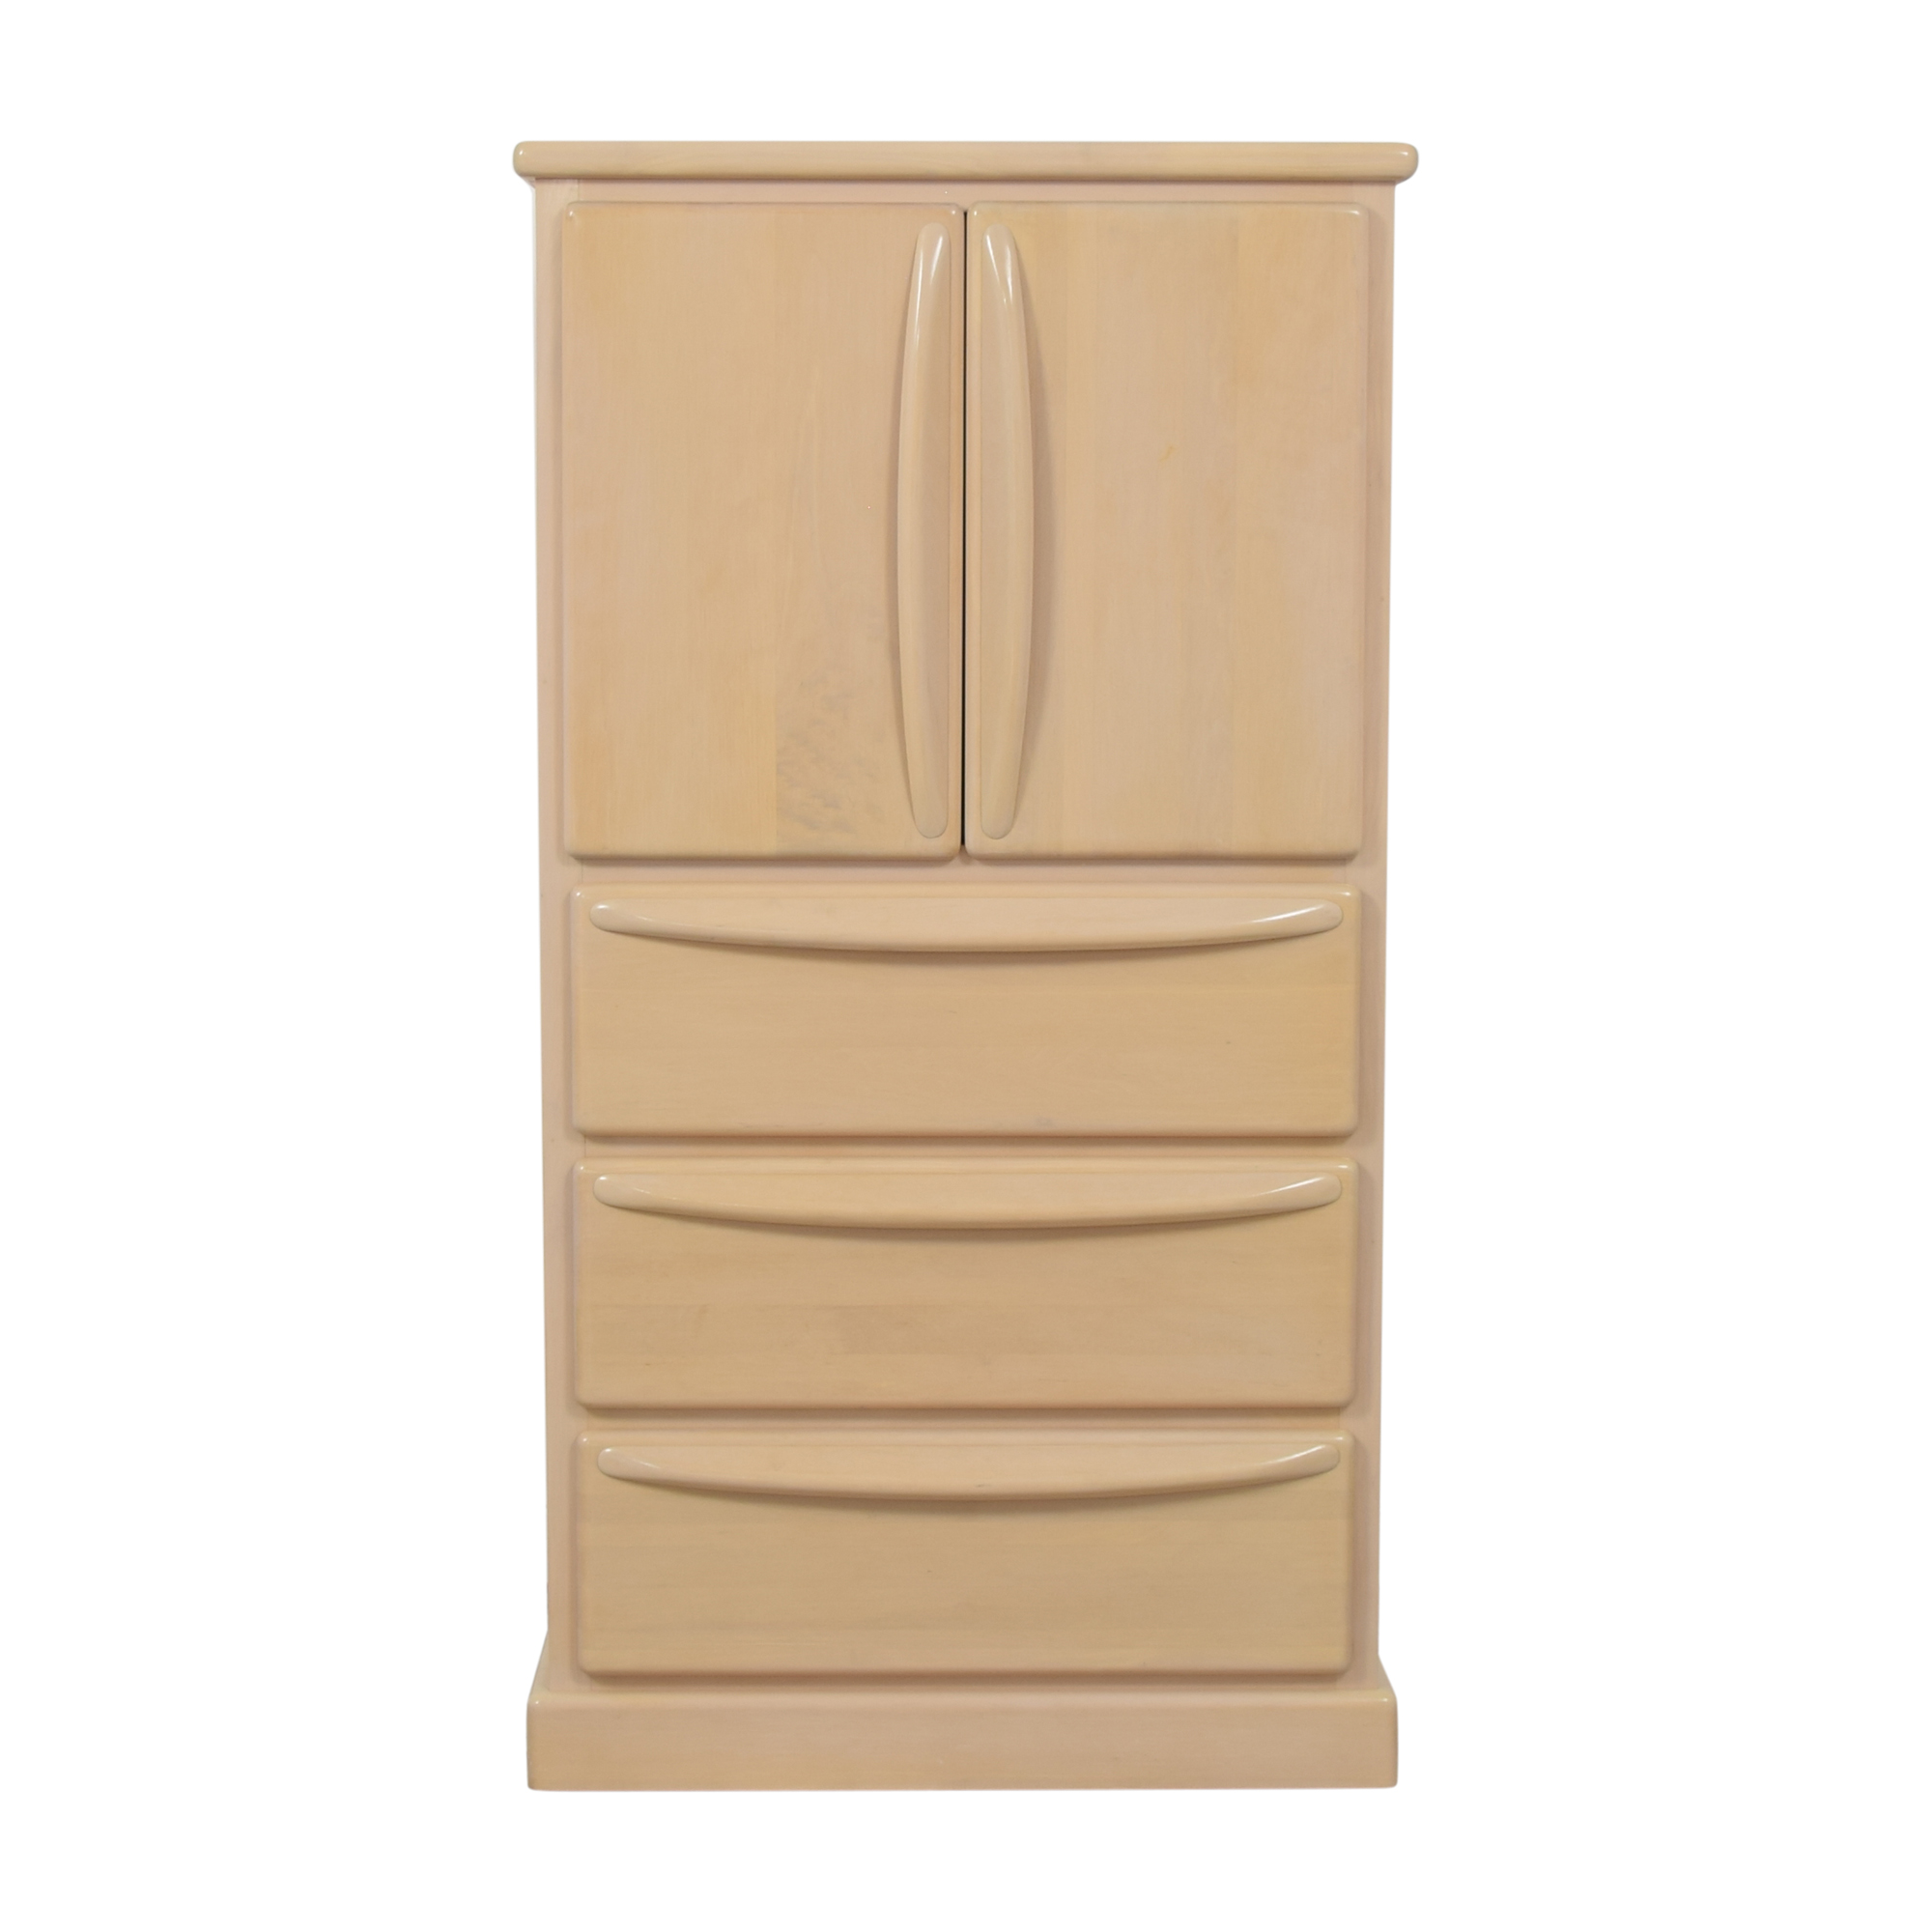 Canadel Canadel Three Drawer Armoire Storage